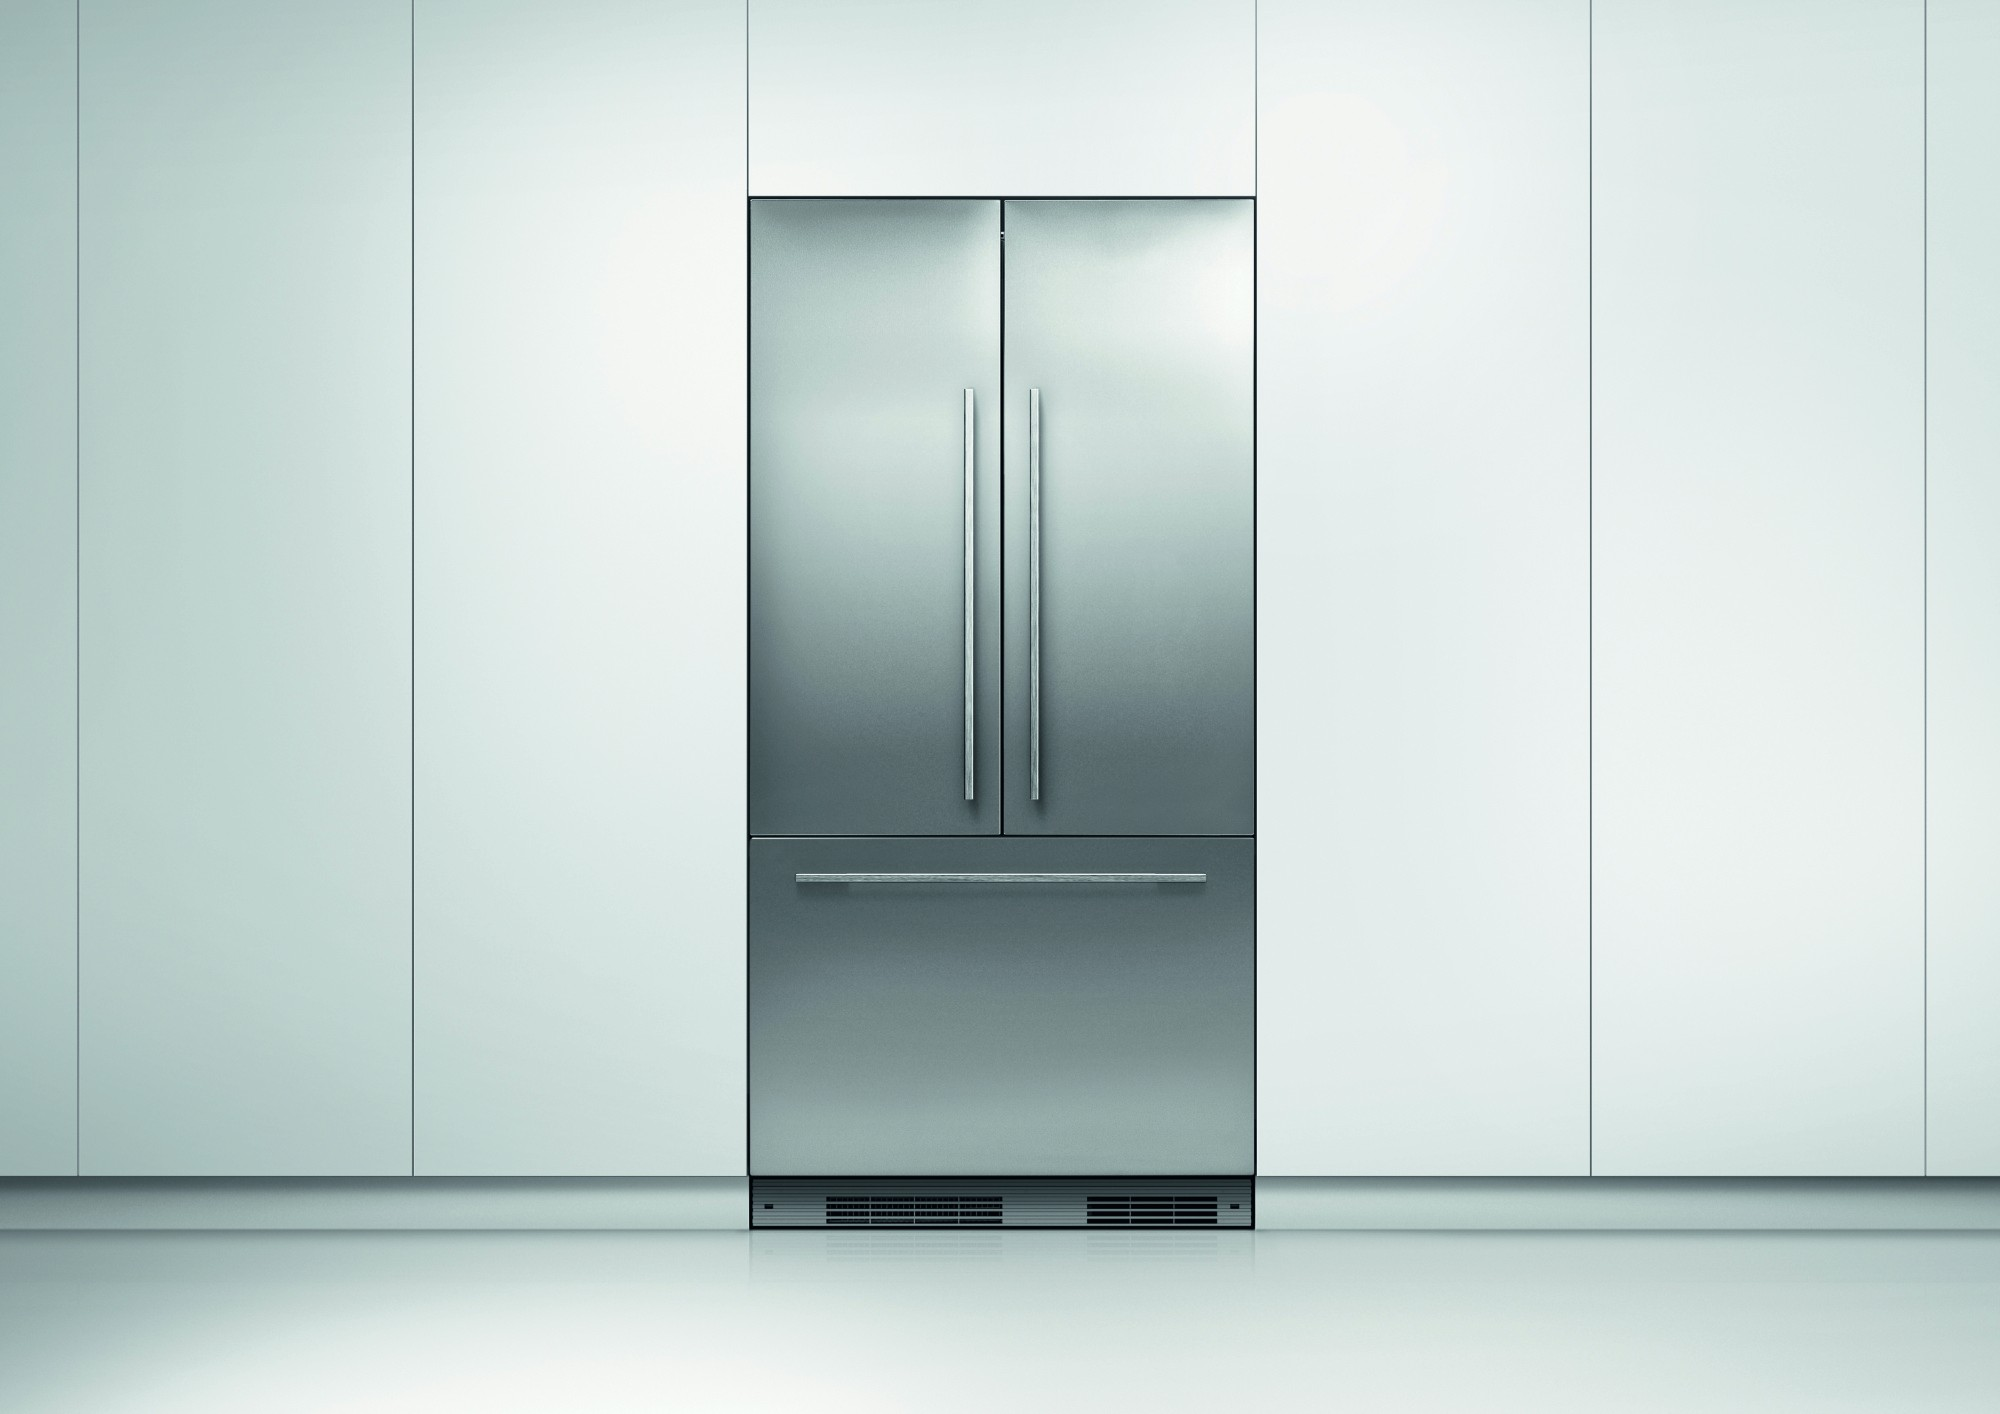 RS36A72J1N | Fisher Paykel 36"|2000|1414|?|en|2|749ff9715d0d97919bef987770be826b|False|UNLIKELY|0.33042189478874207